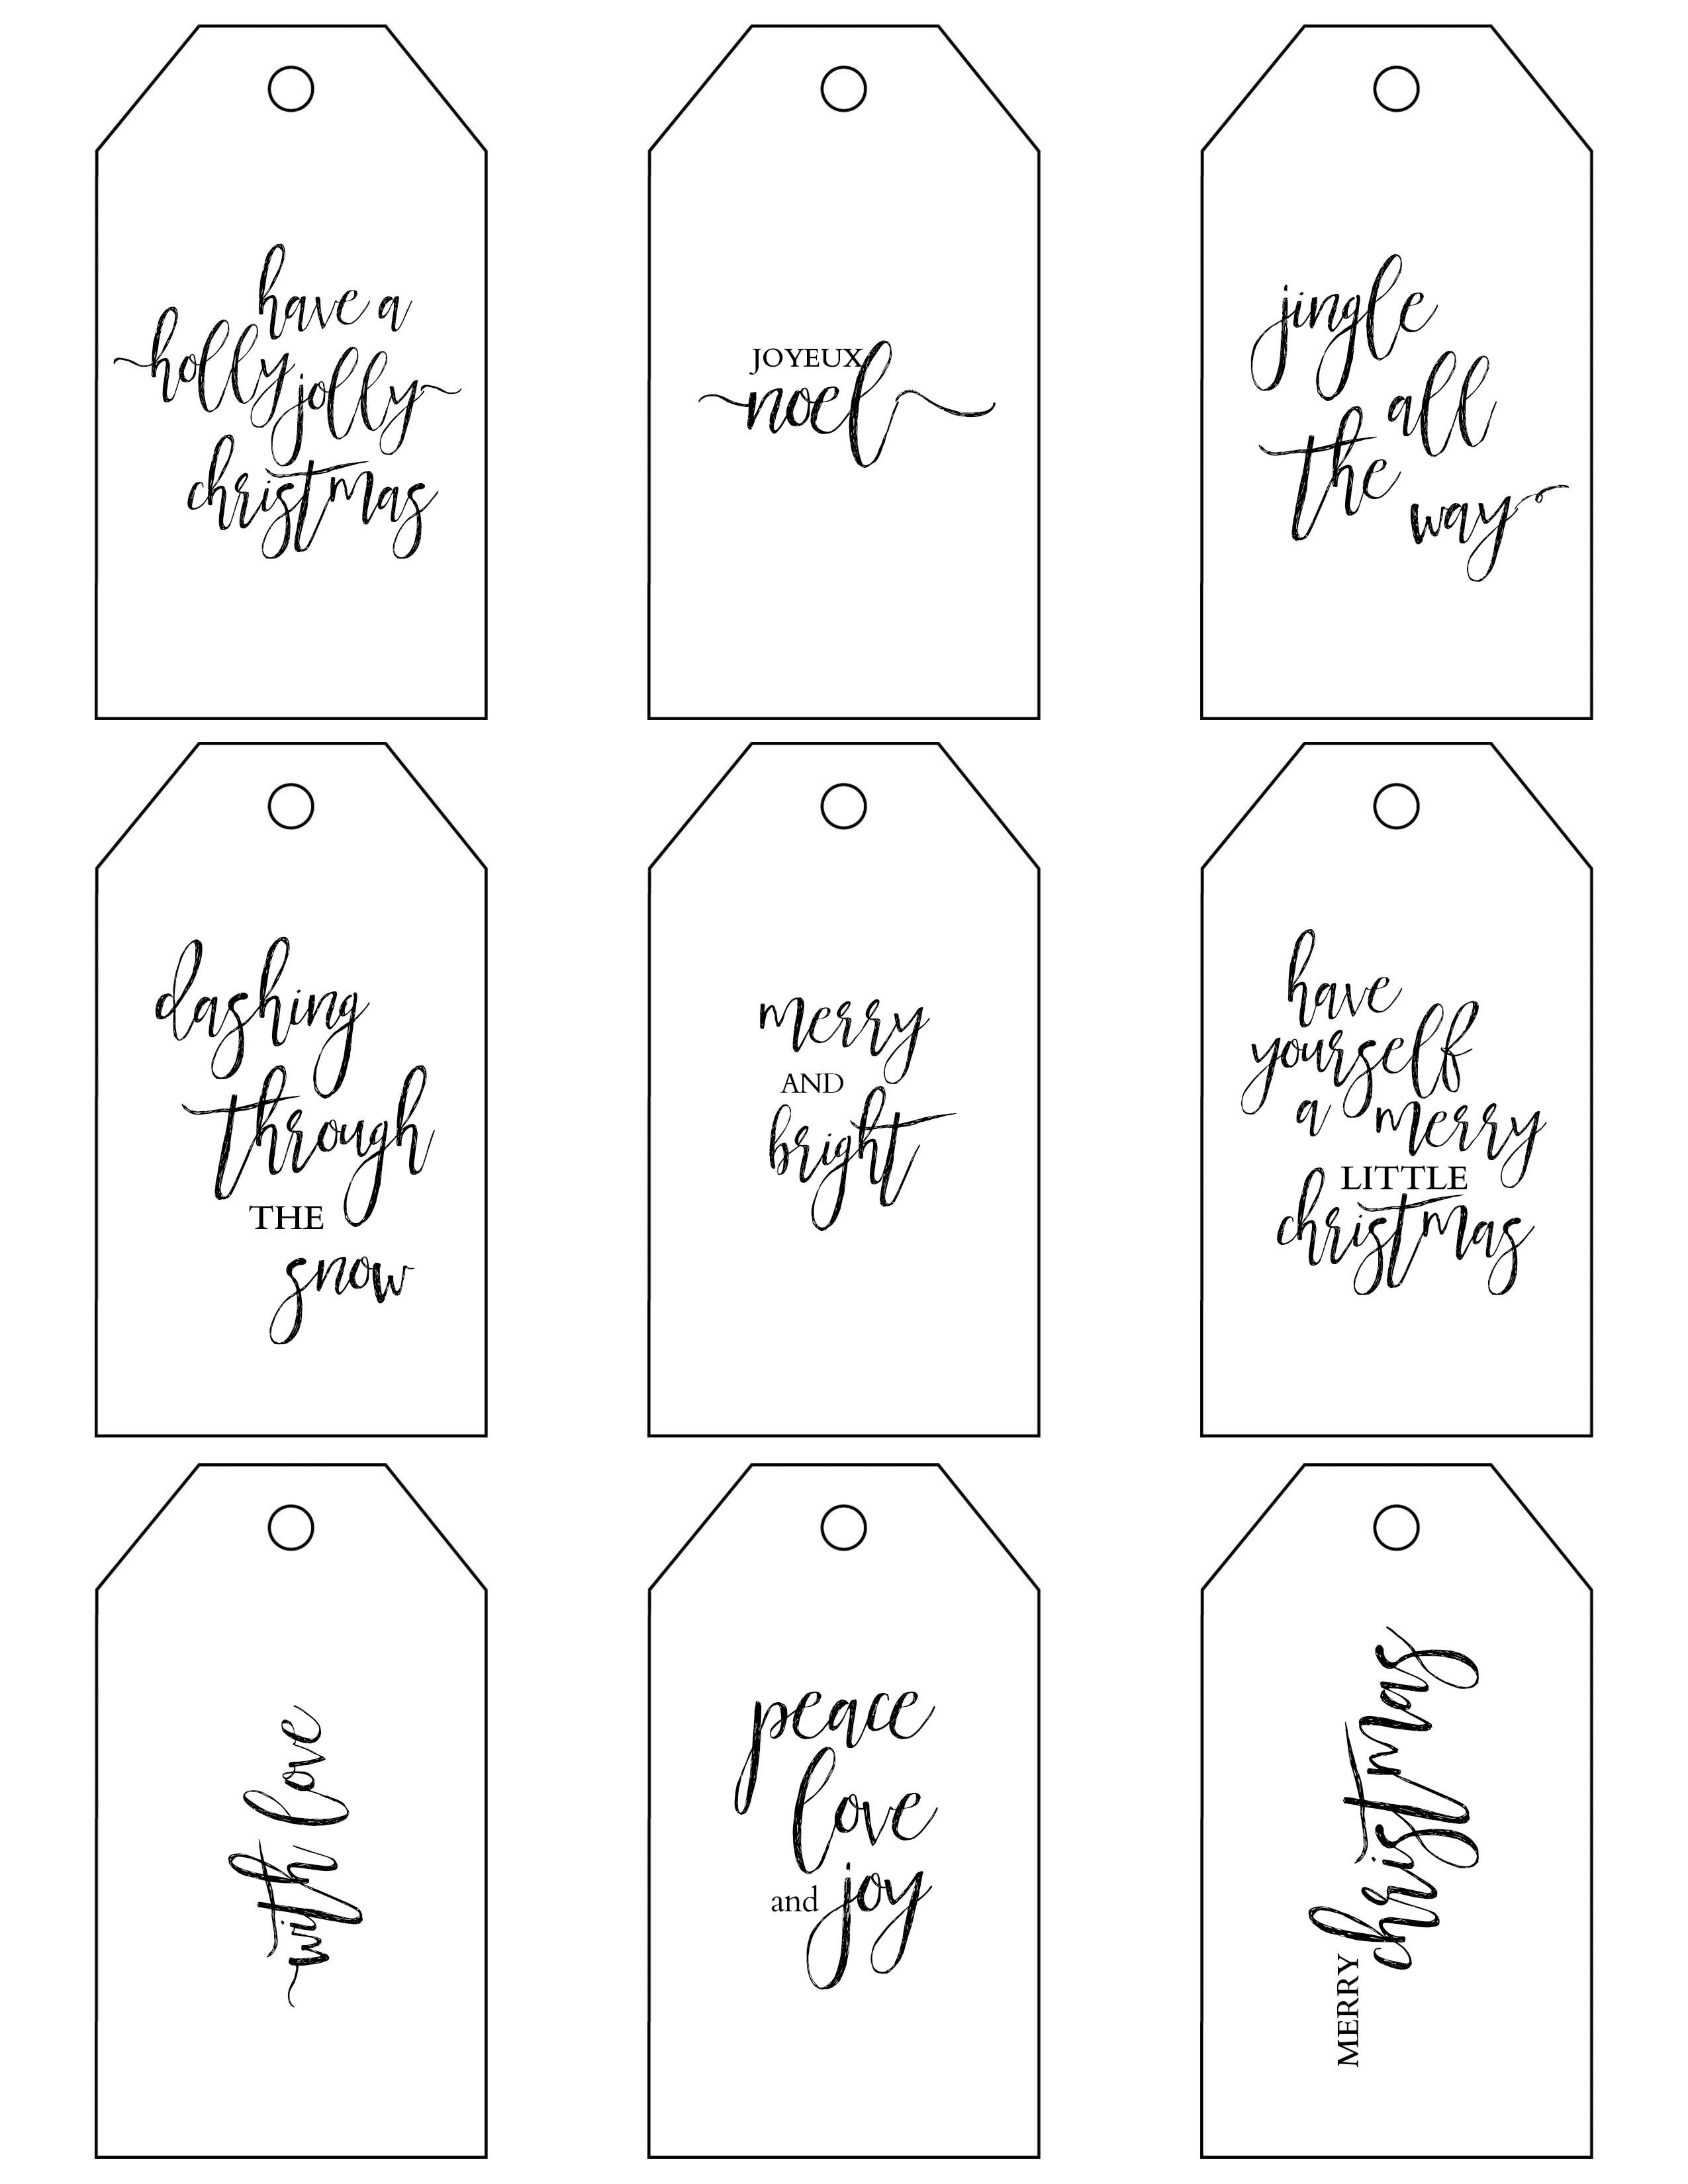 Printable Christmas Gift Tags Make Holiday Wrapping Simple - Free Printable Christmas Tags